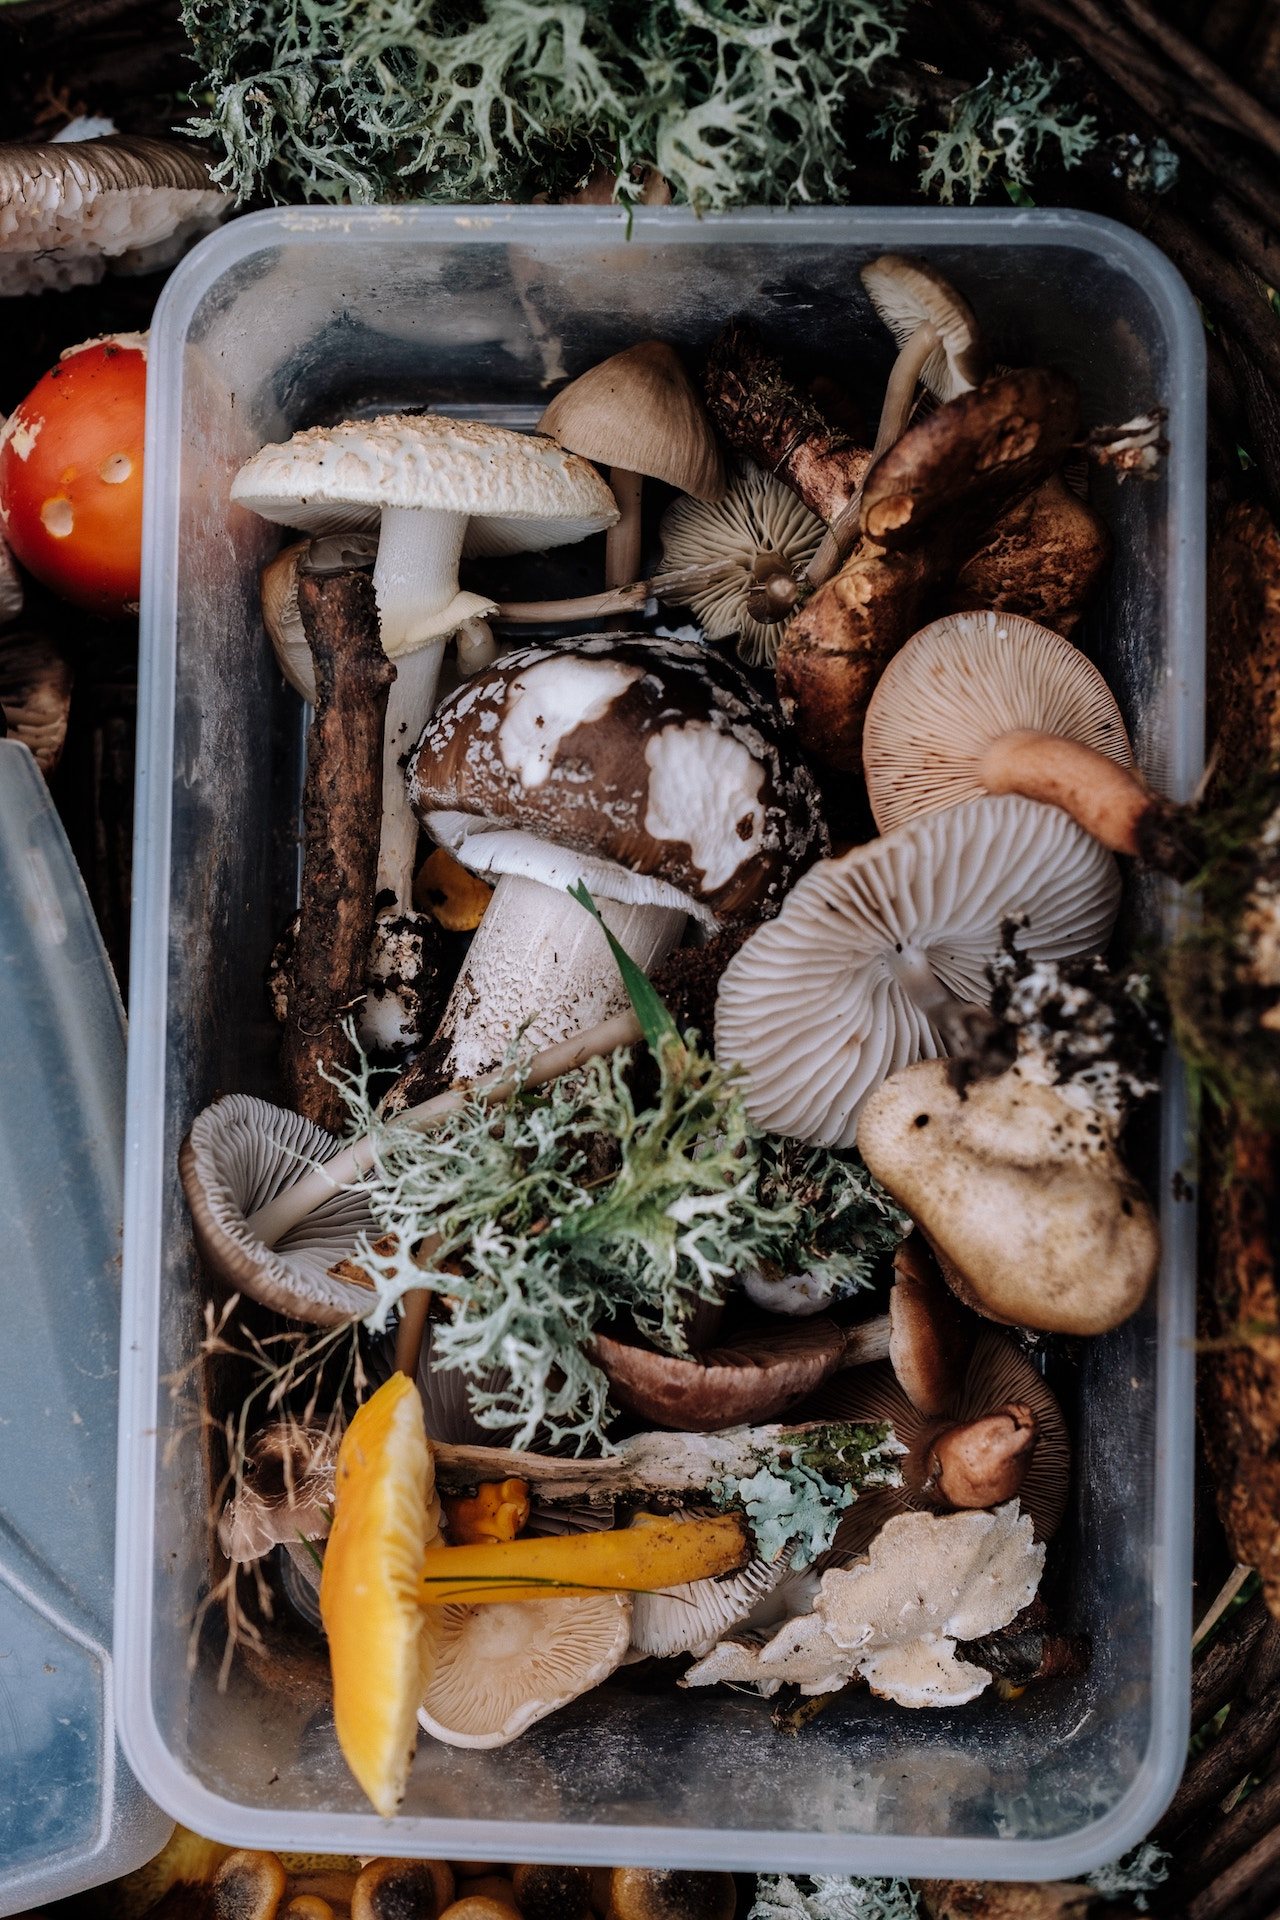 mushrooms-annie-spratt-215779-unsplash